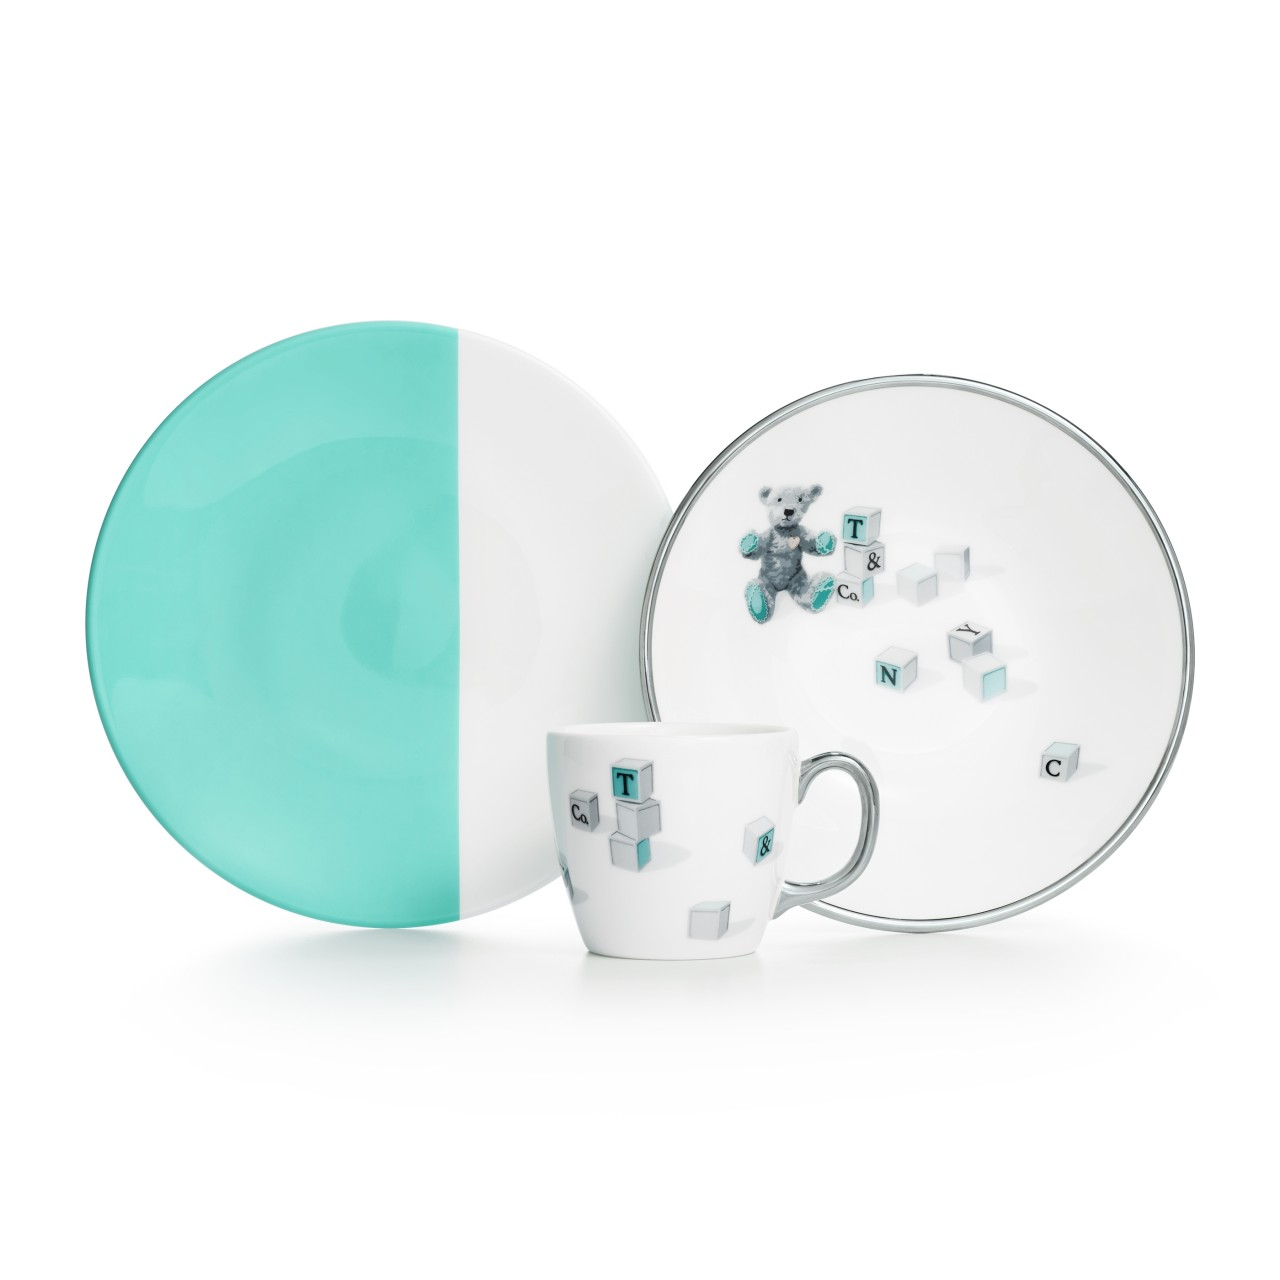 Tiffany Co Unveils A Stunning New Home Accessories Collection